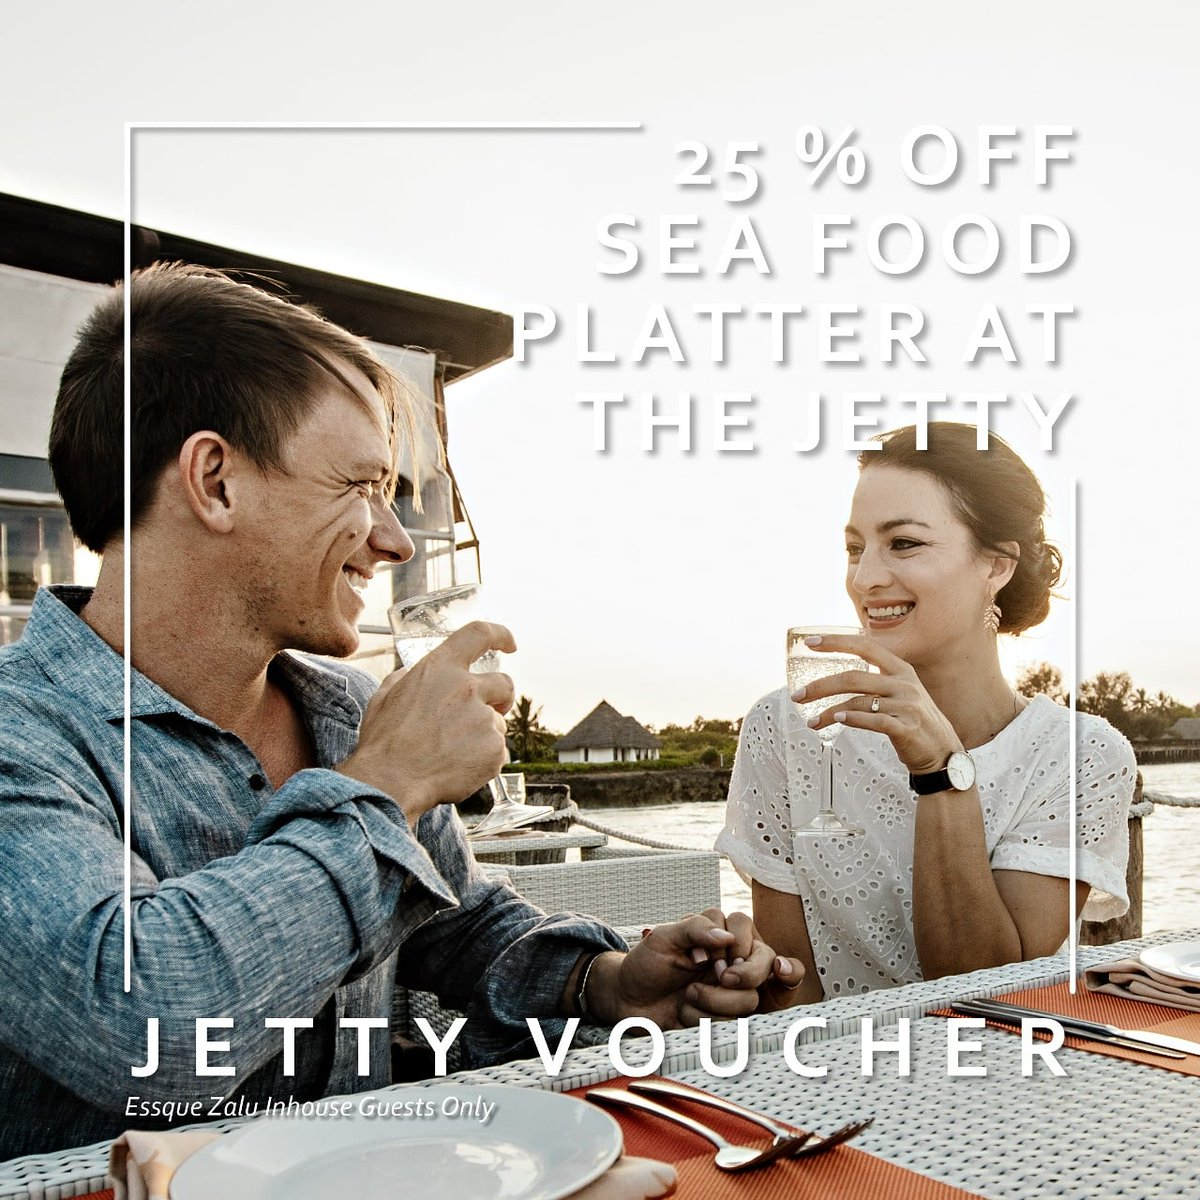 More reason to stay over as you get 25% off our AMAZING Seafood Platter on The Jetty.                                           #essquezaluzanzibar #lunchtimeprom #bestholiday #thejetty #holiday #visitzanzibar #foodies #myzanzibar #islandholiday #luxuryholiday #worldtravel https://t.co/MdYDygIsaC